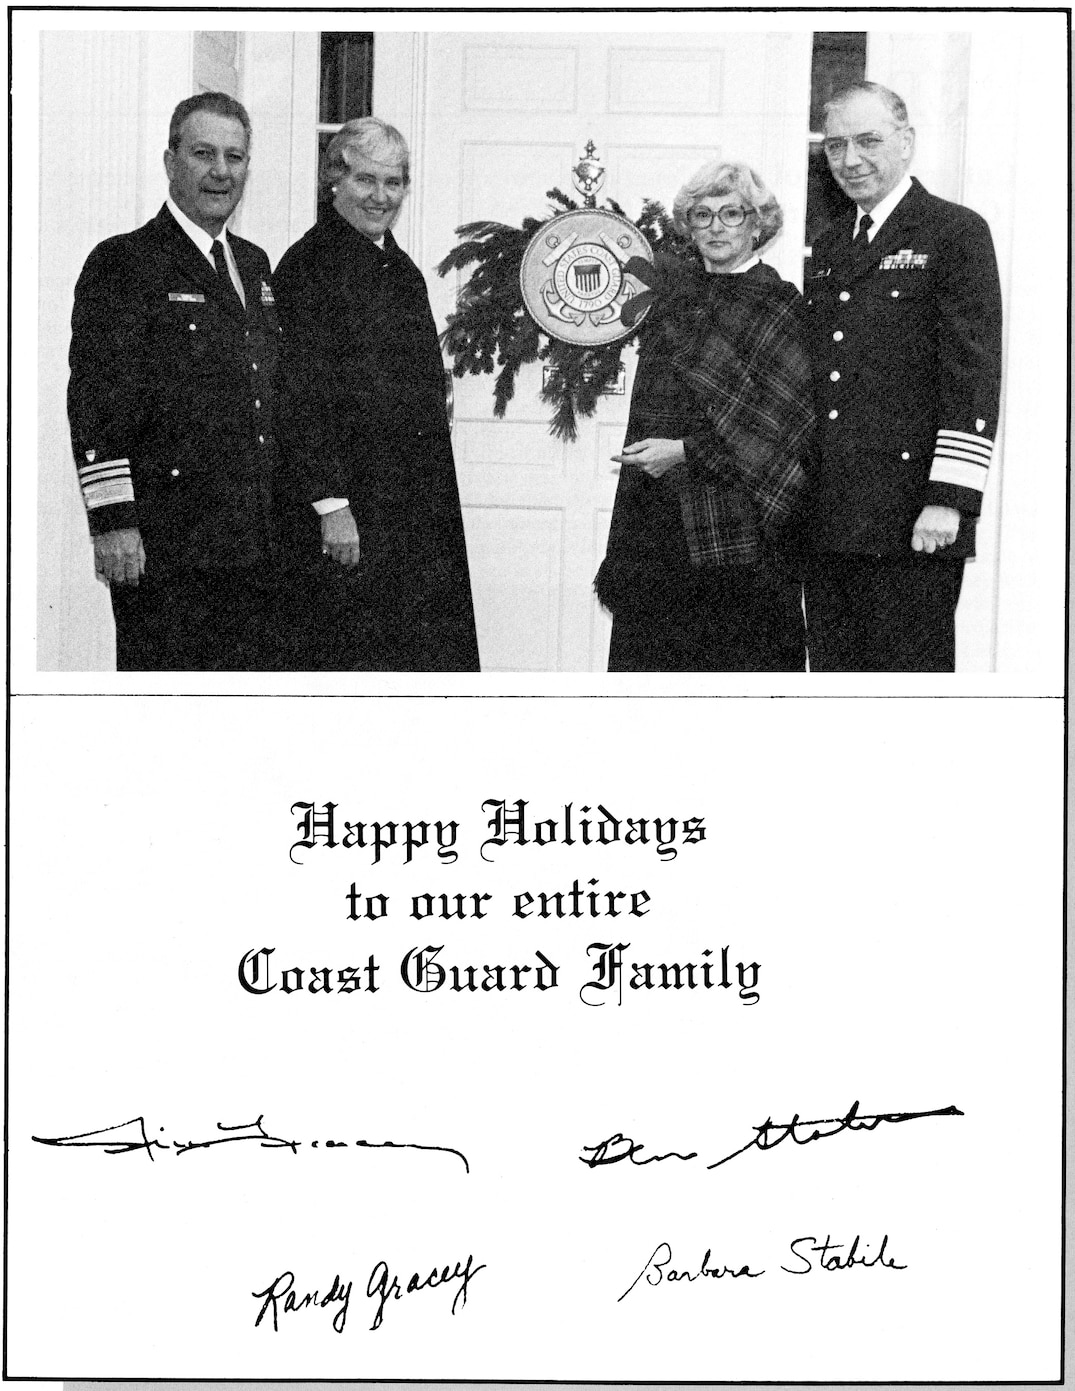 Admiral Gracey's 1983 Christmas Card to the Coast Guard Family.